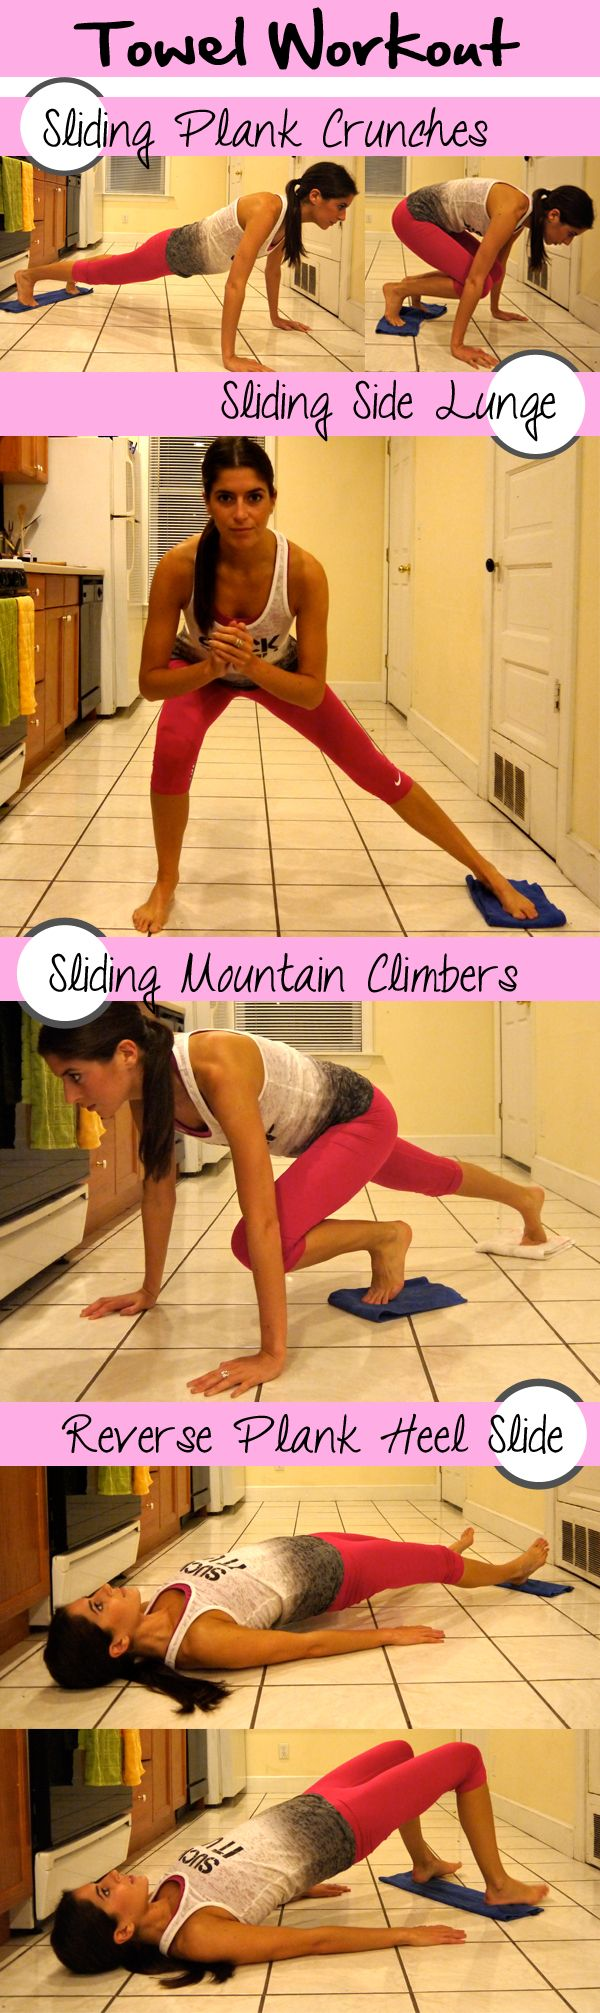 Things to do at home without a gym membership or equipment!